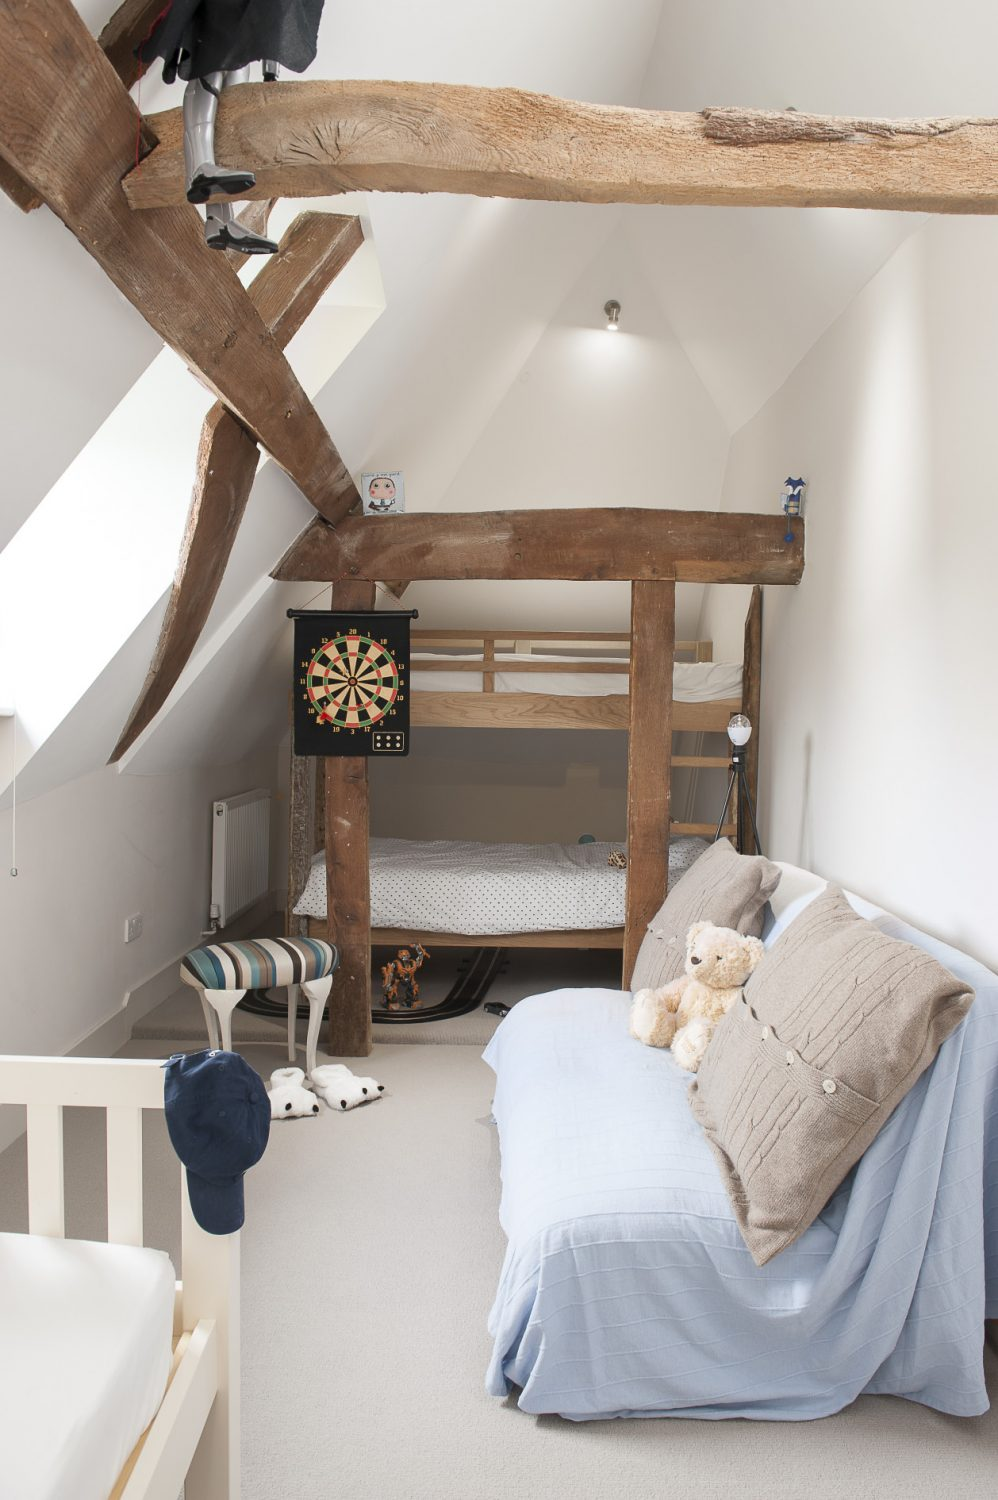 The children's attic bedrooms, with bunks designed by Perrine and built by Jason, are like an enchanted vaulted and beamed eyrie